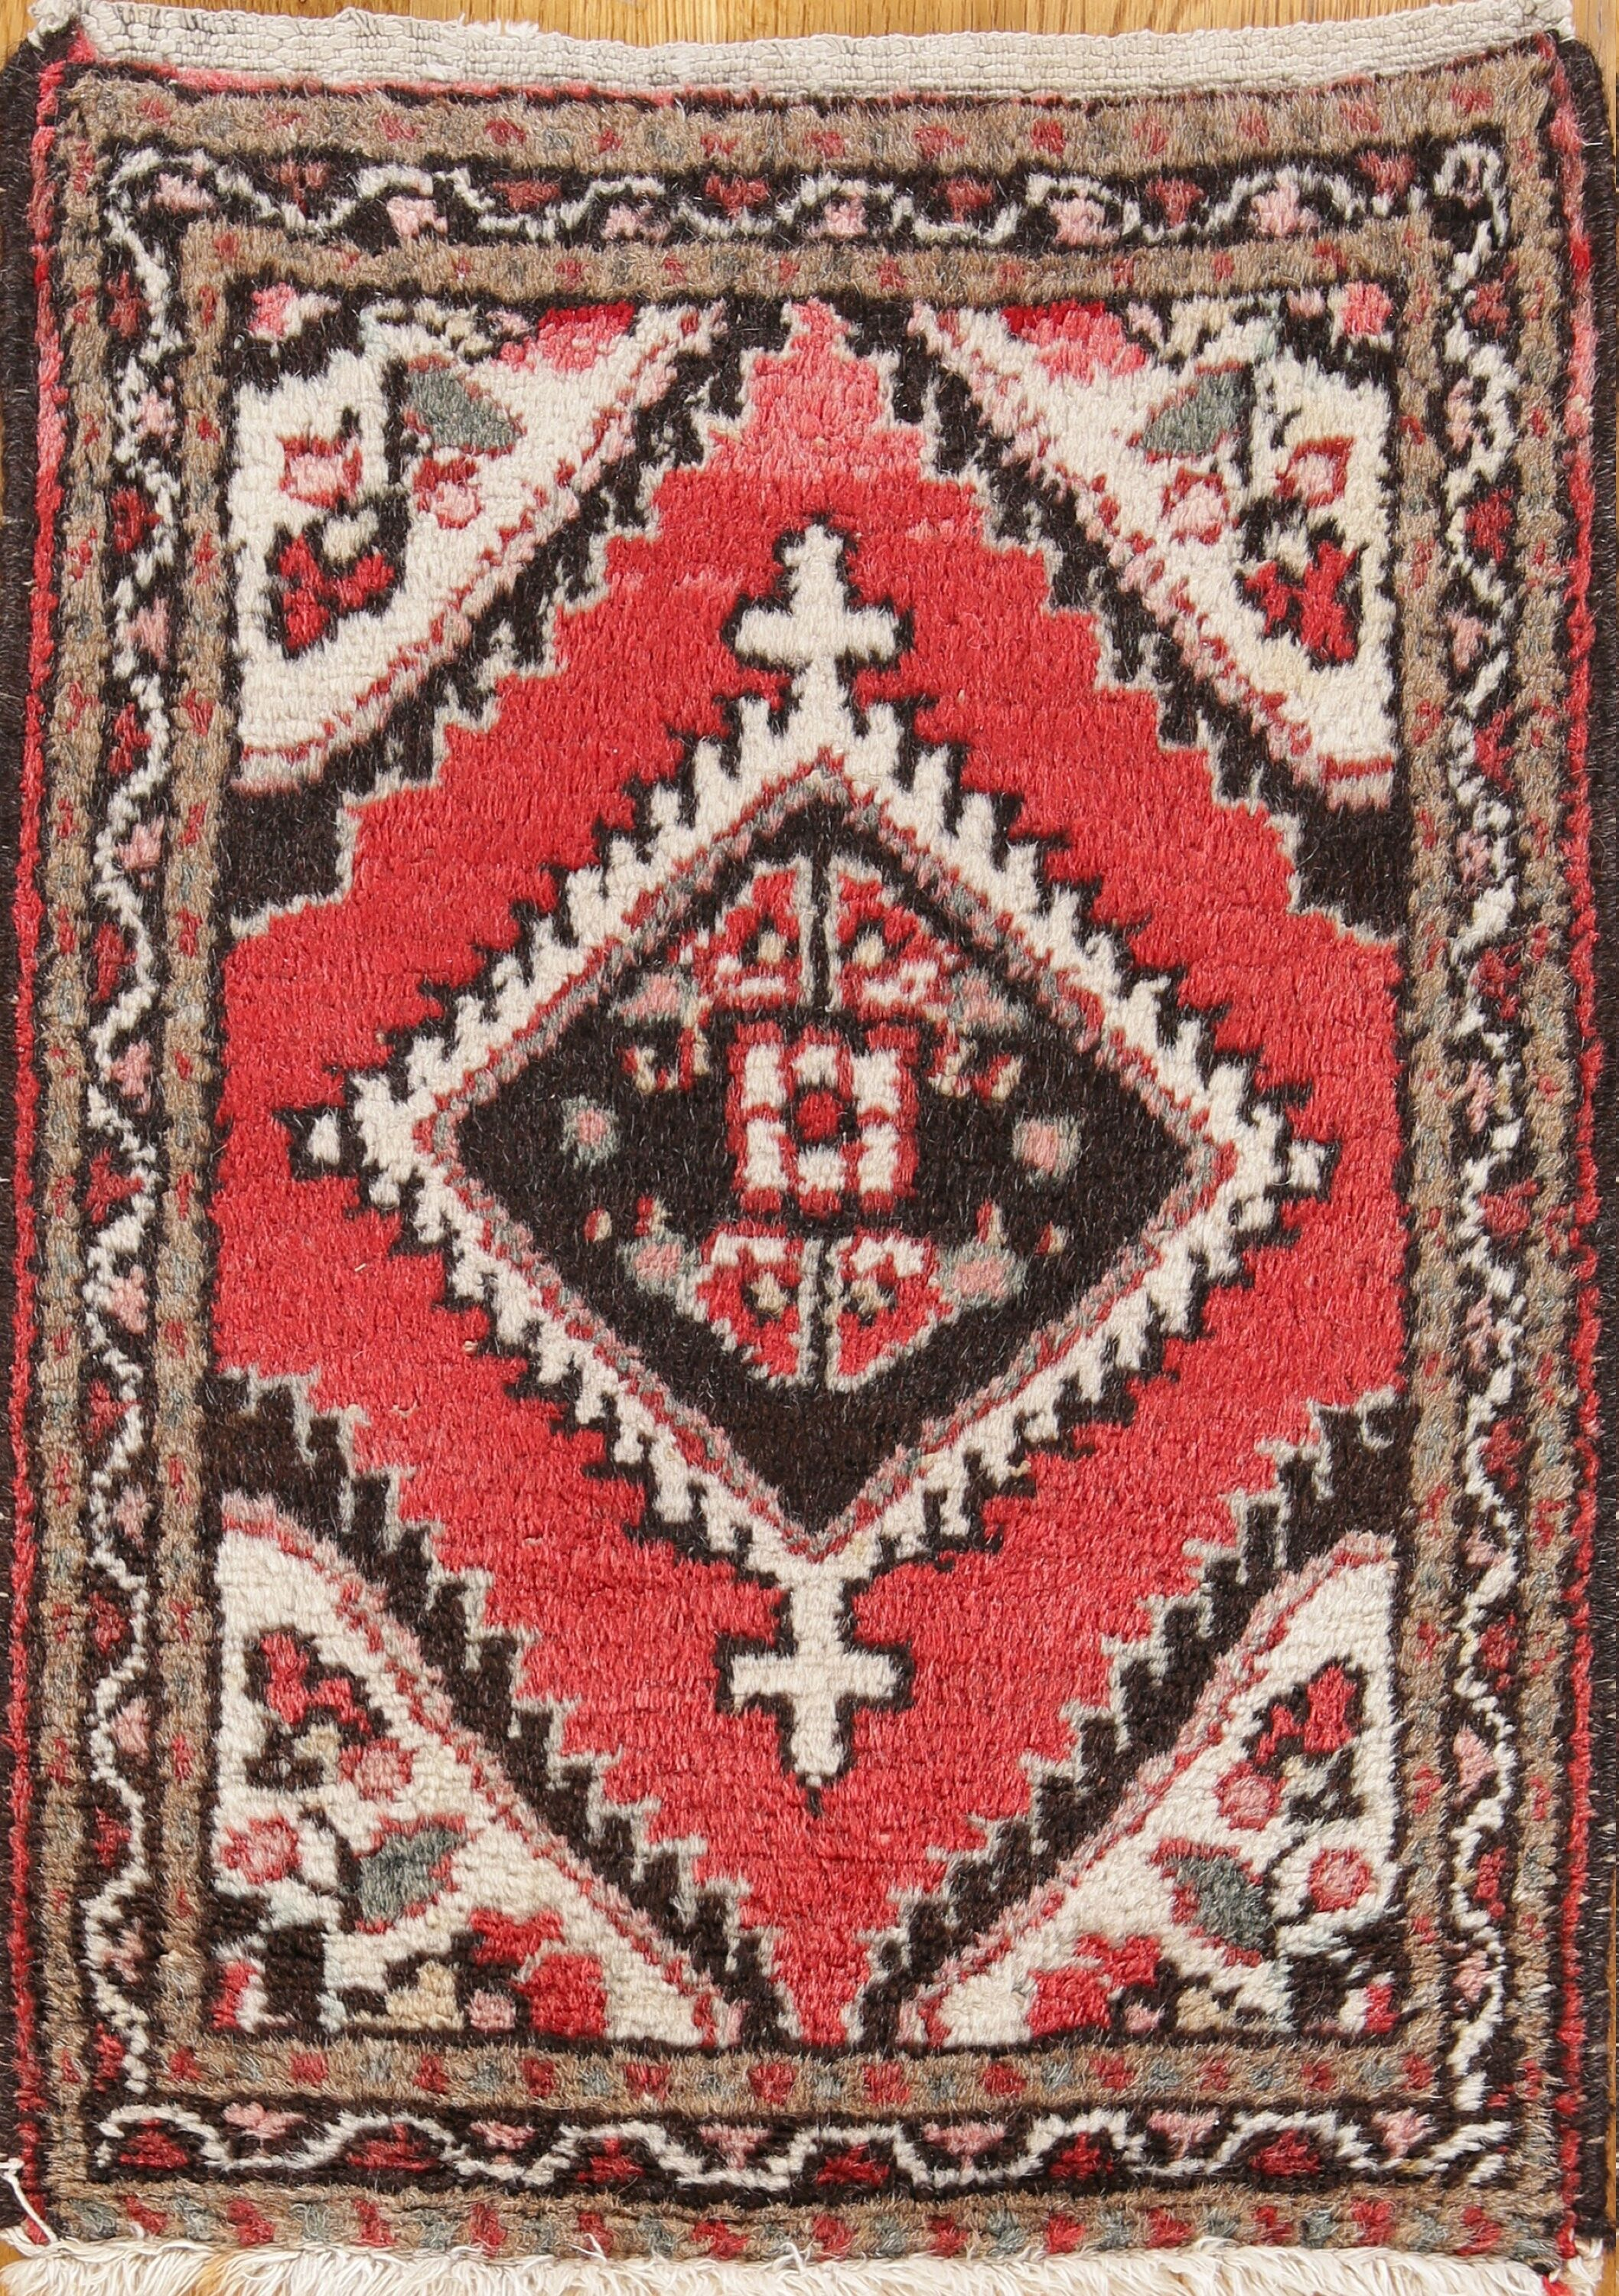 One-of-a-Kind Hamedan Persian Hand-Knotted 1'6'' x 2' Wool Brown/Coral Red/Beige Area Rug